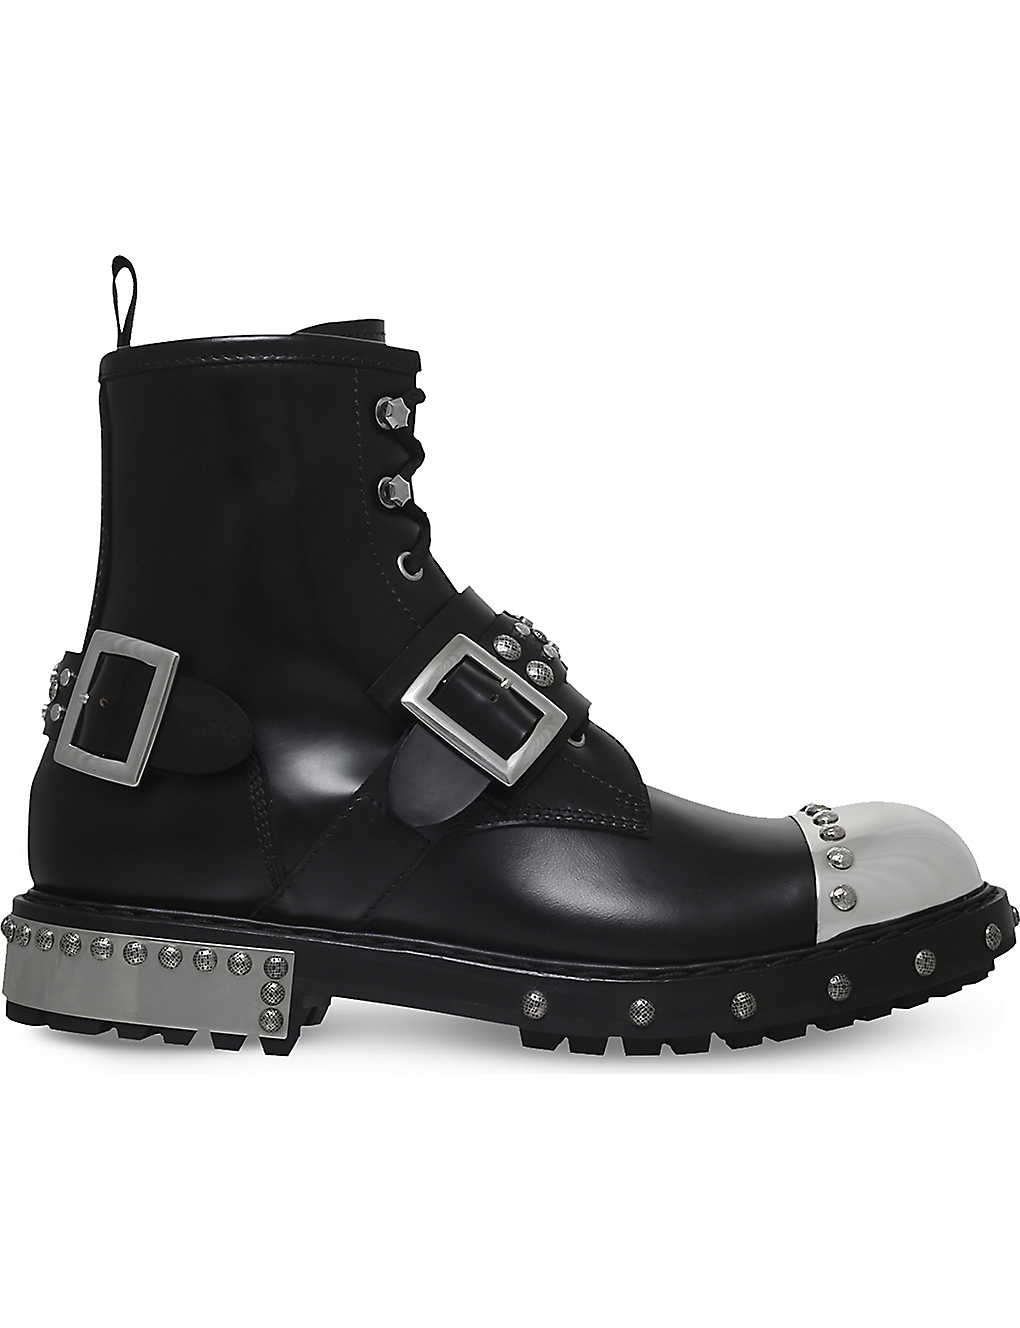 Black/comb ALEXANDER MCQUEEN Steel toe cap leather biker boots